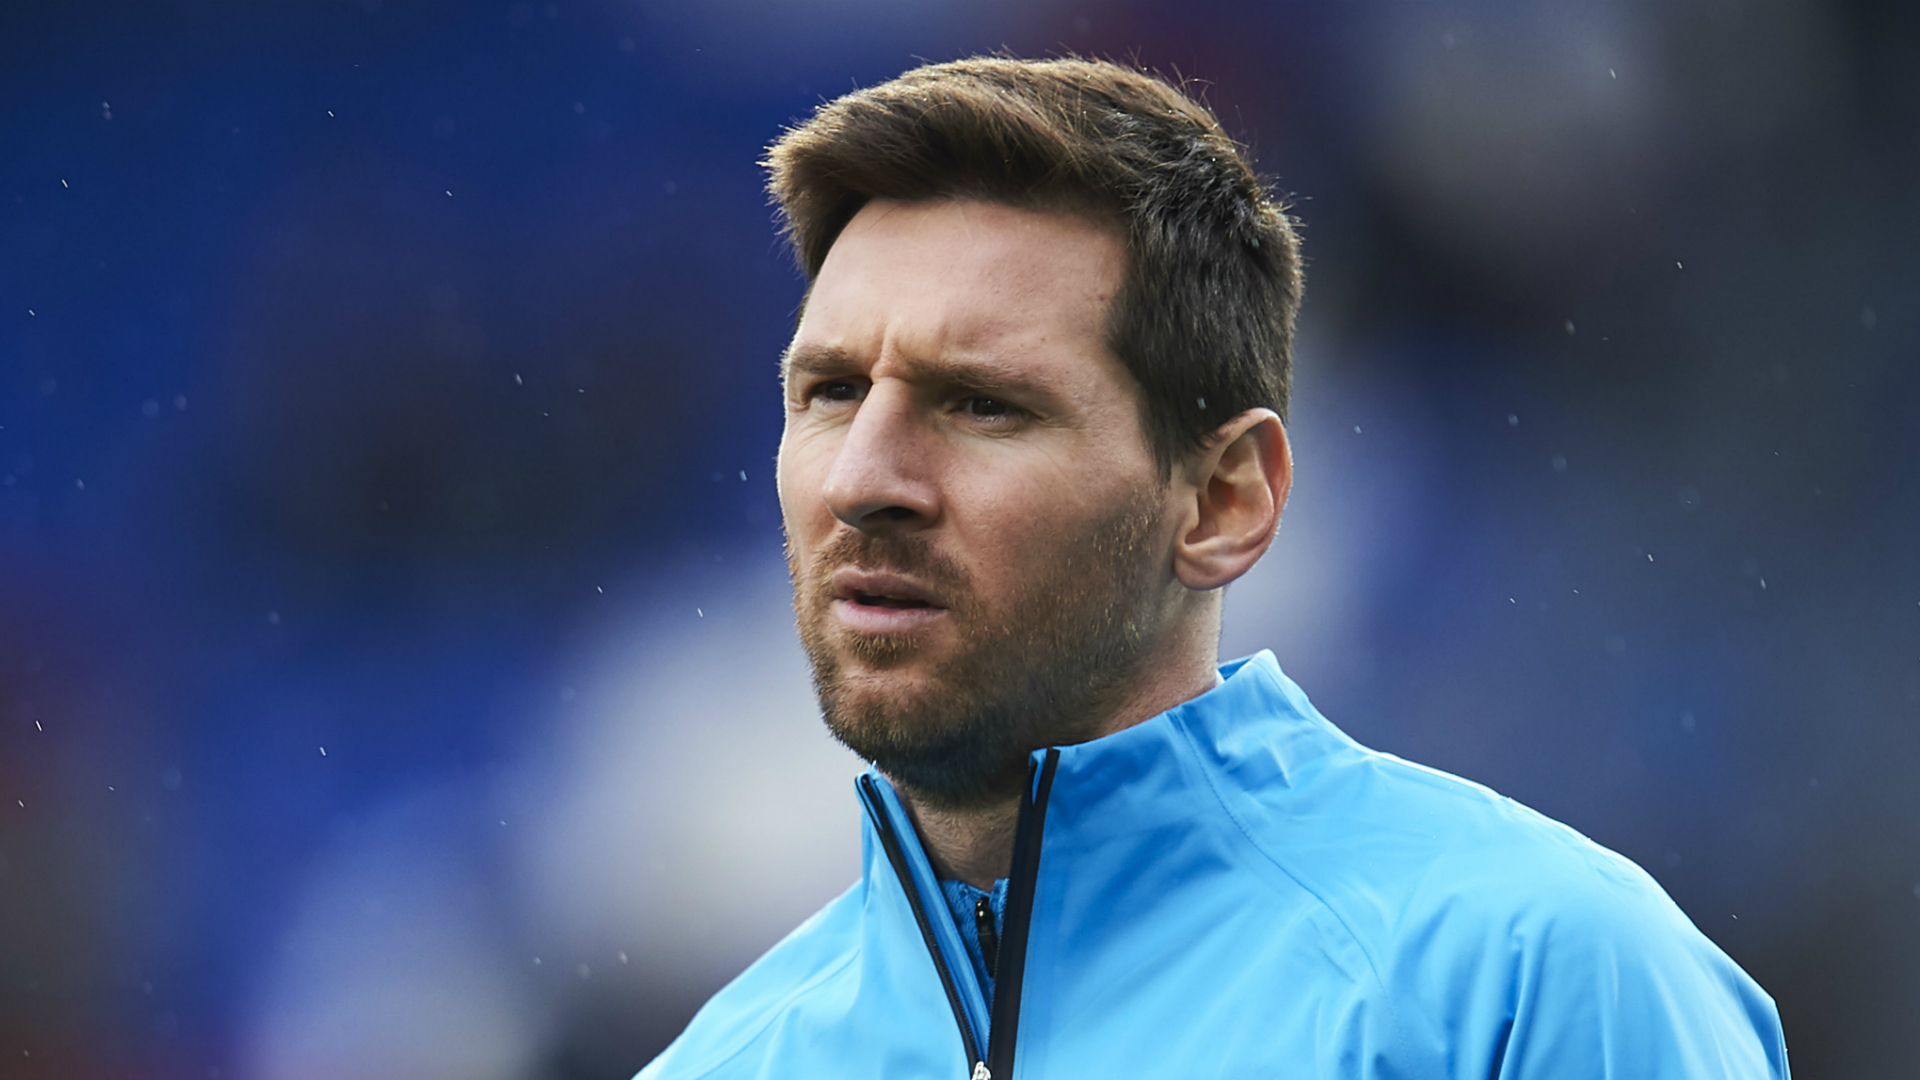 Messi committed to Barcelona on condition of success